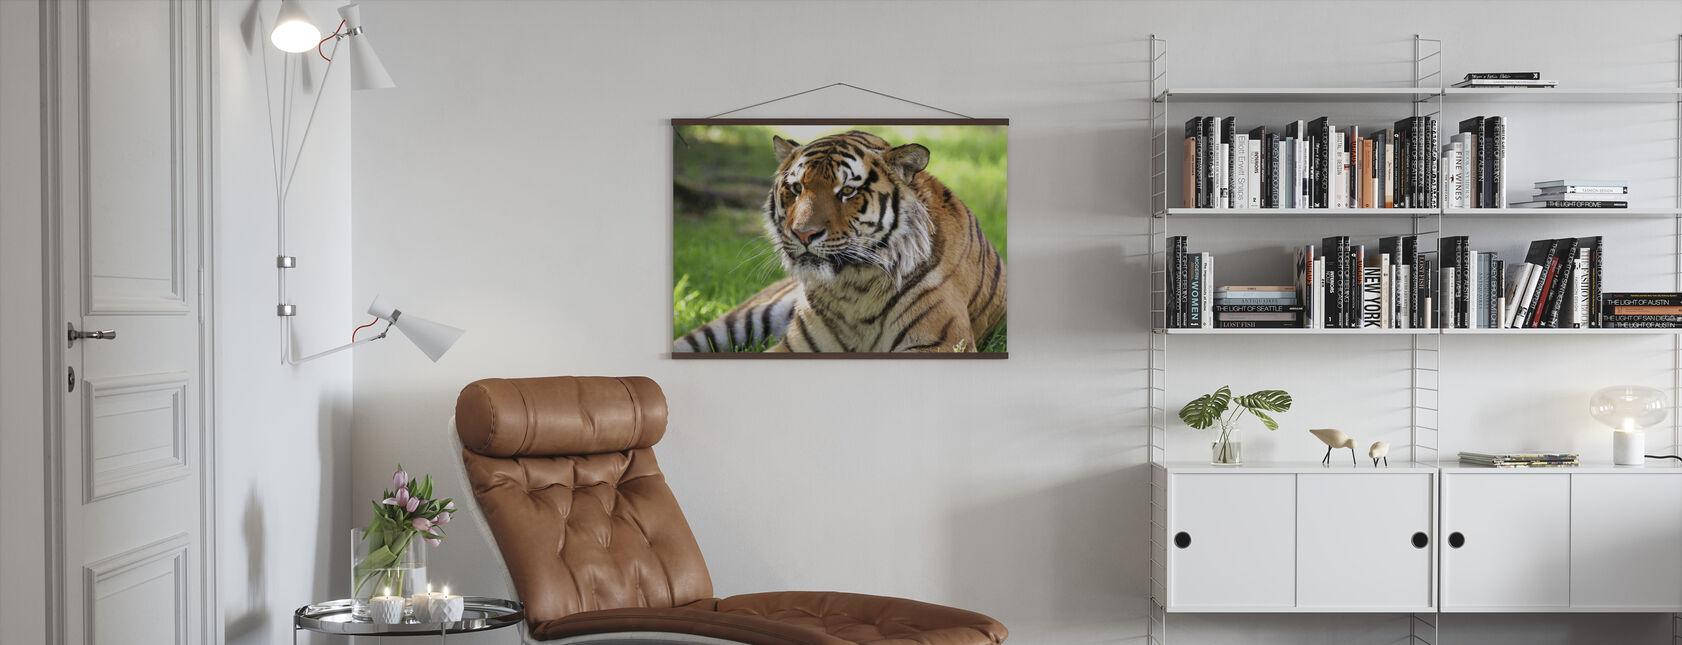 Tiger - Poster - Living Room